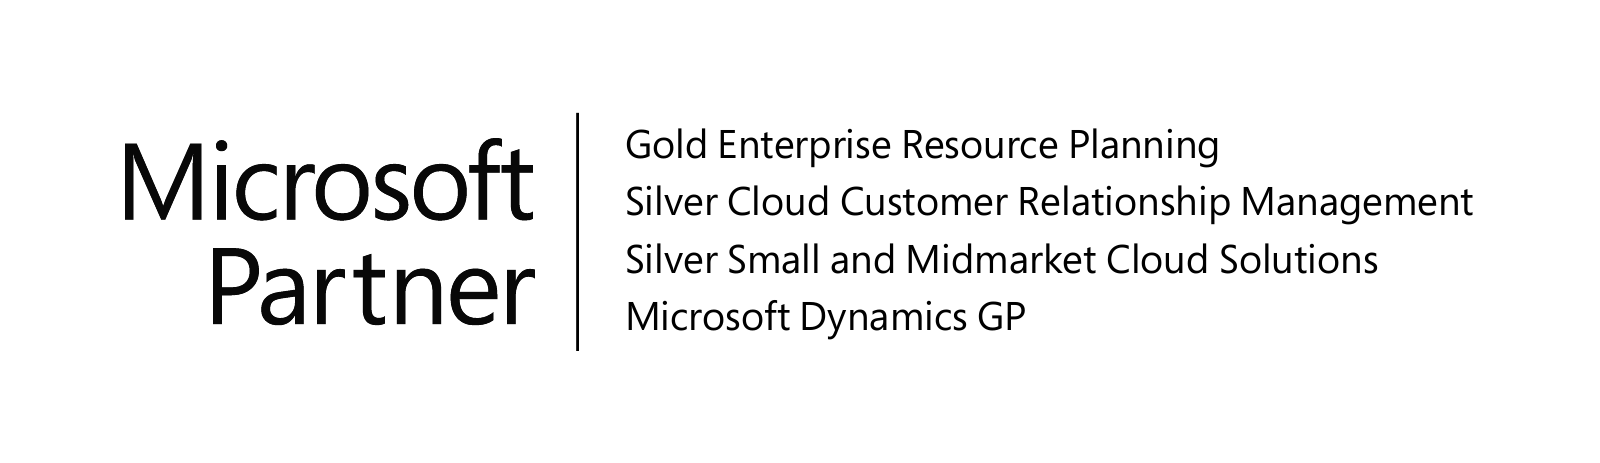 Implementation and Support Services for Microsoft ERP and CRM